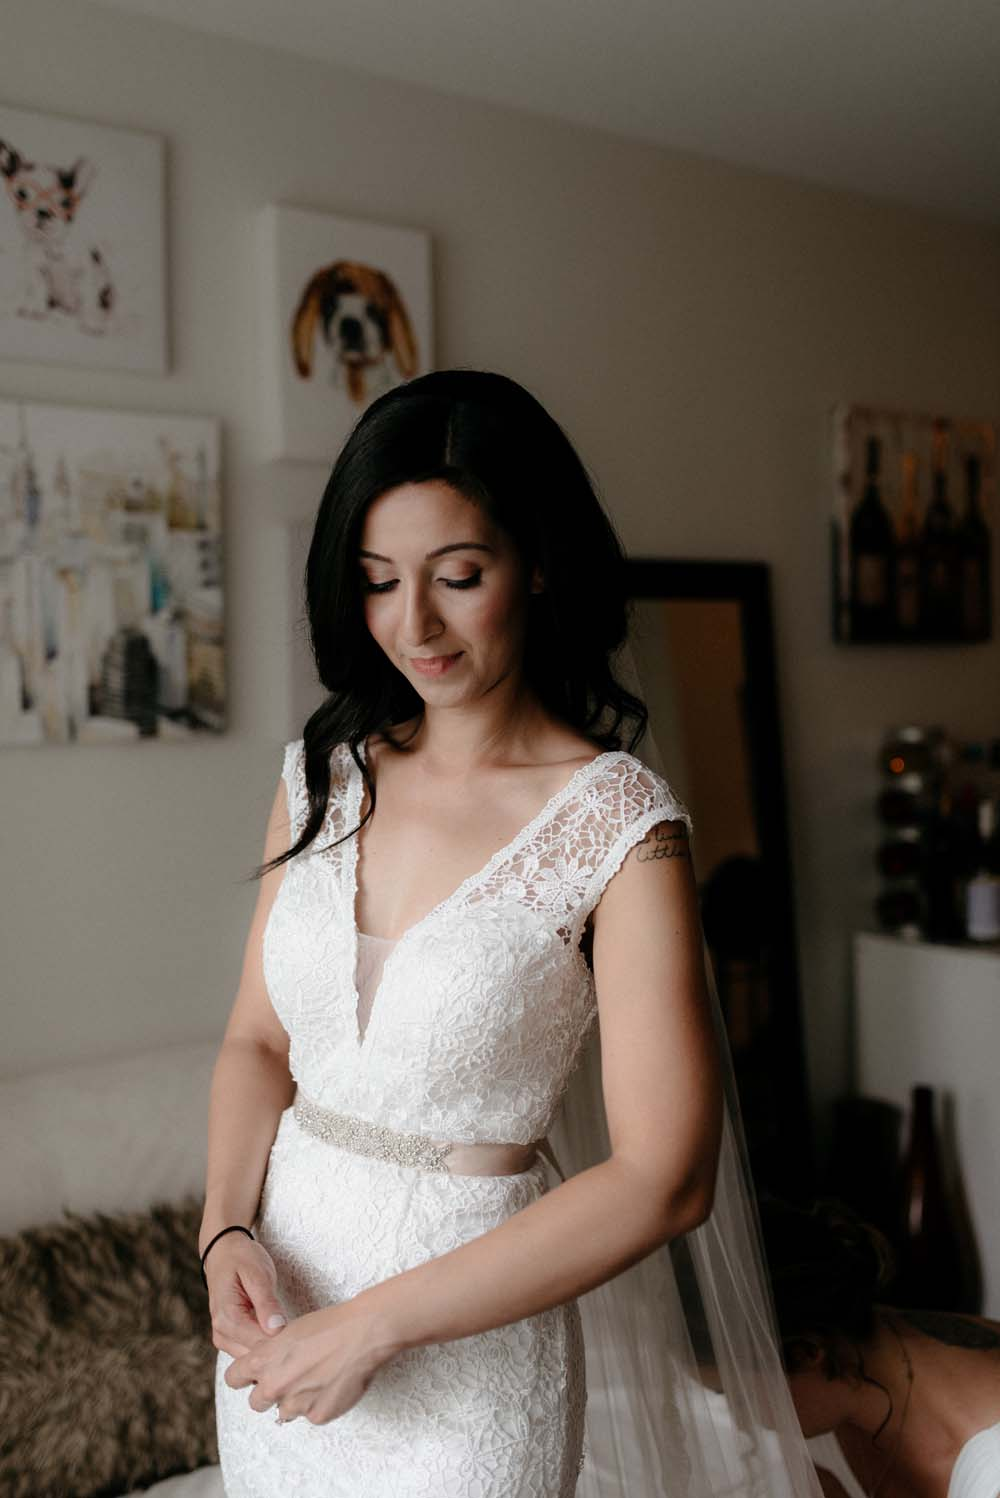 A Multicultural Wedding At The UBC Botanical Garden in Vancouver - bride getting ready